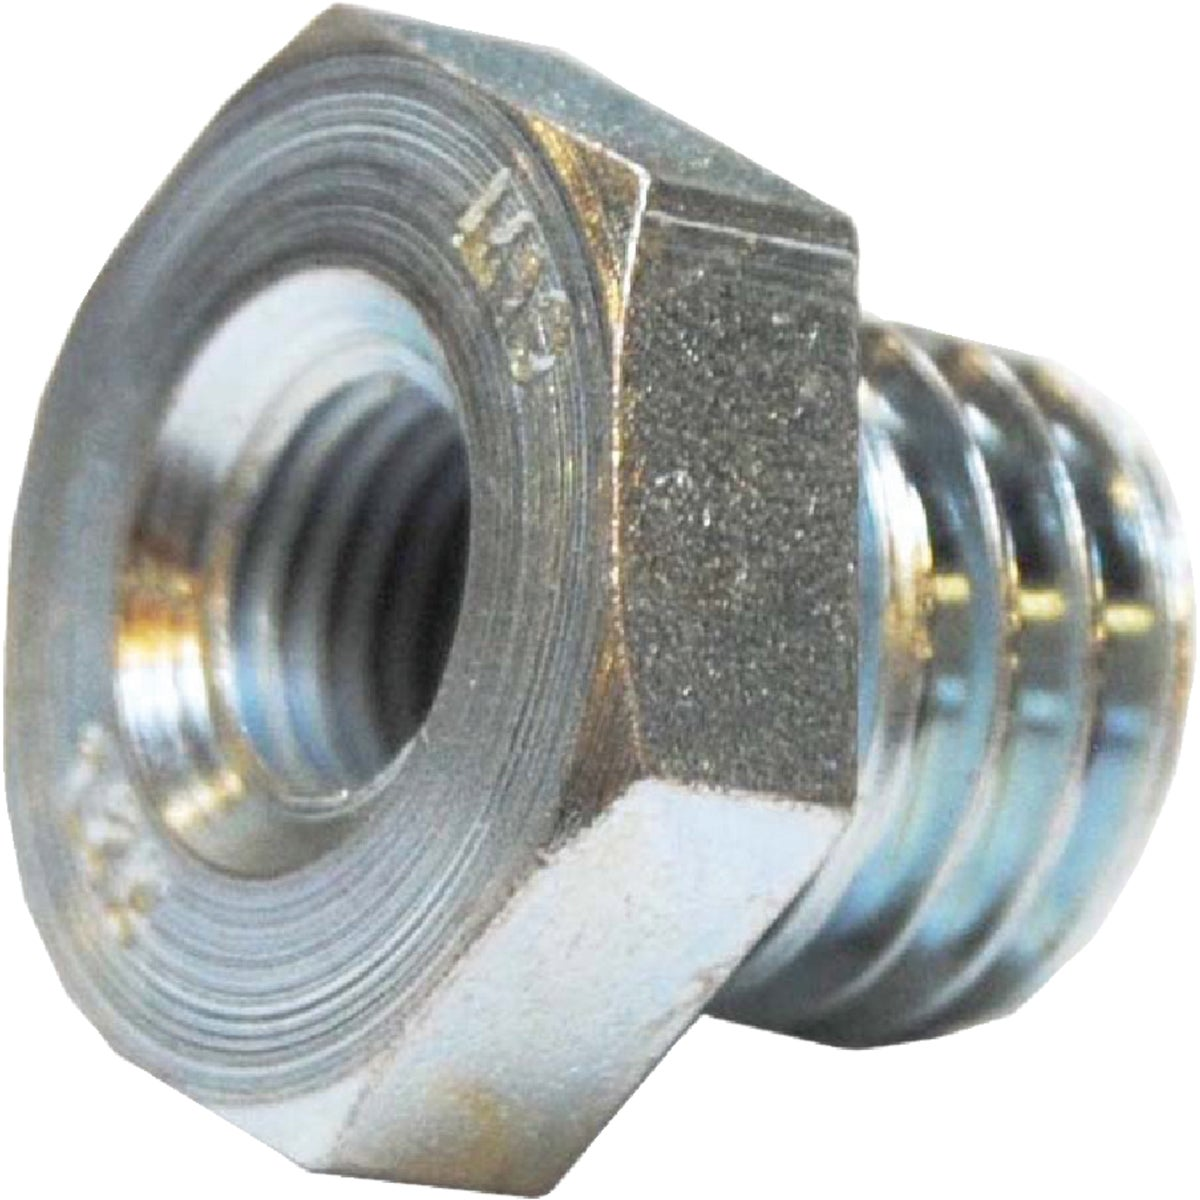 1-1/2X10 M ADAPTER - 36053 by Weiler Corporation